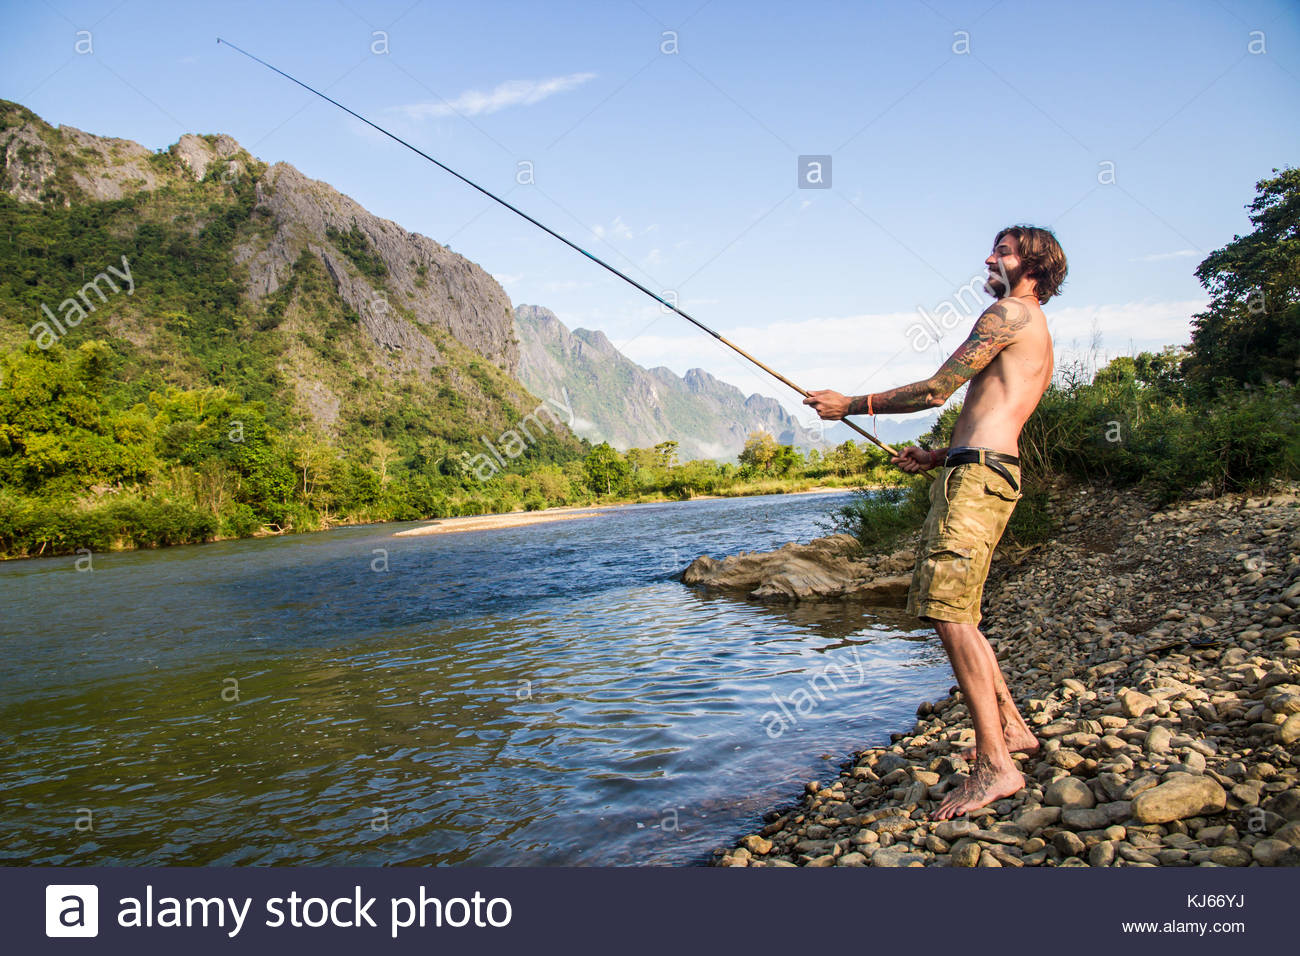 young man with beard fishing by river - Stock Image